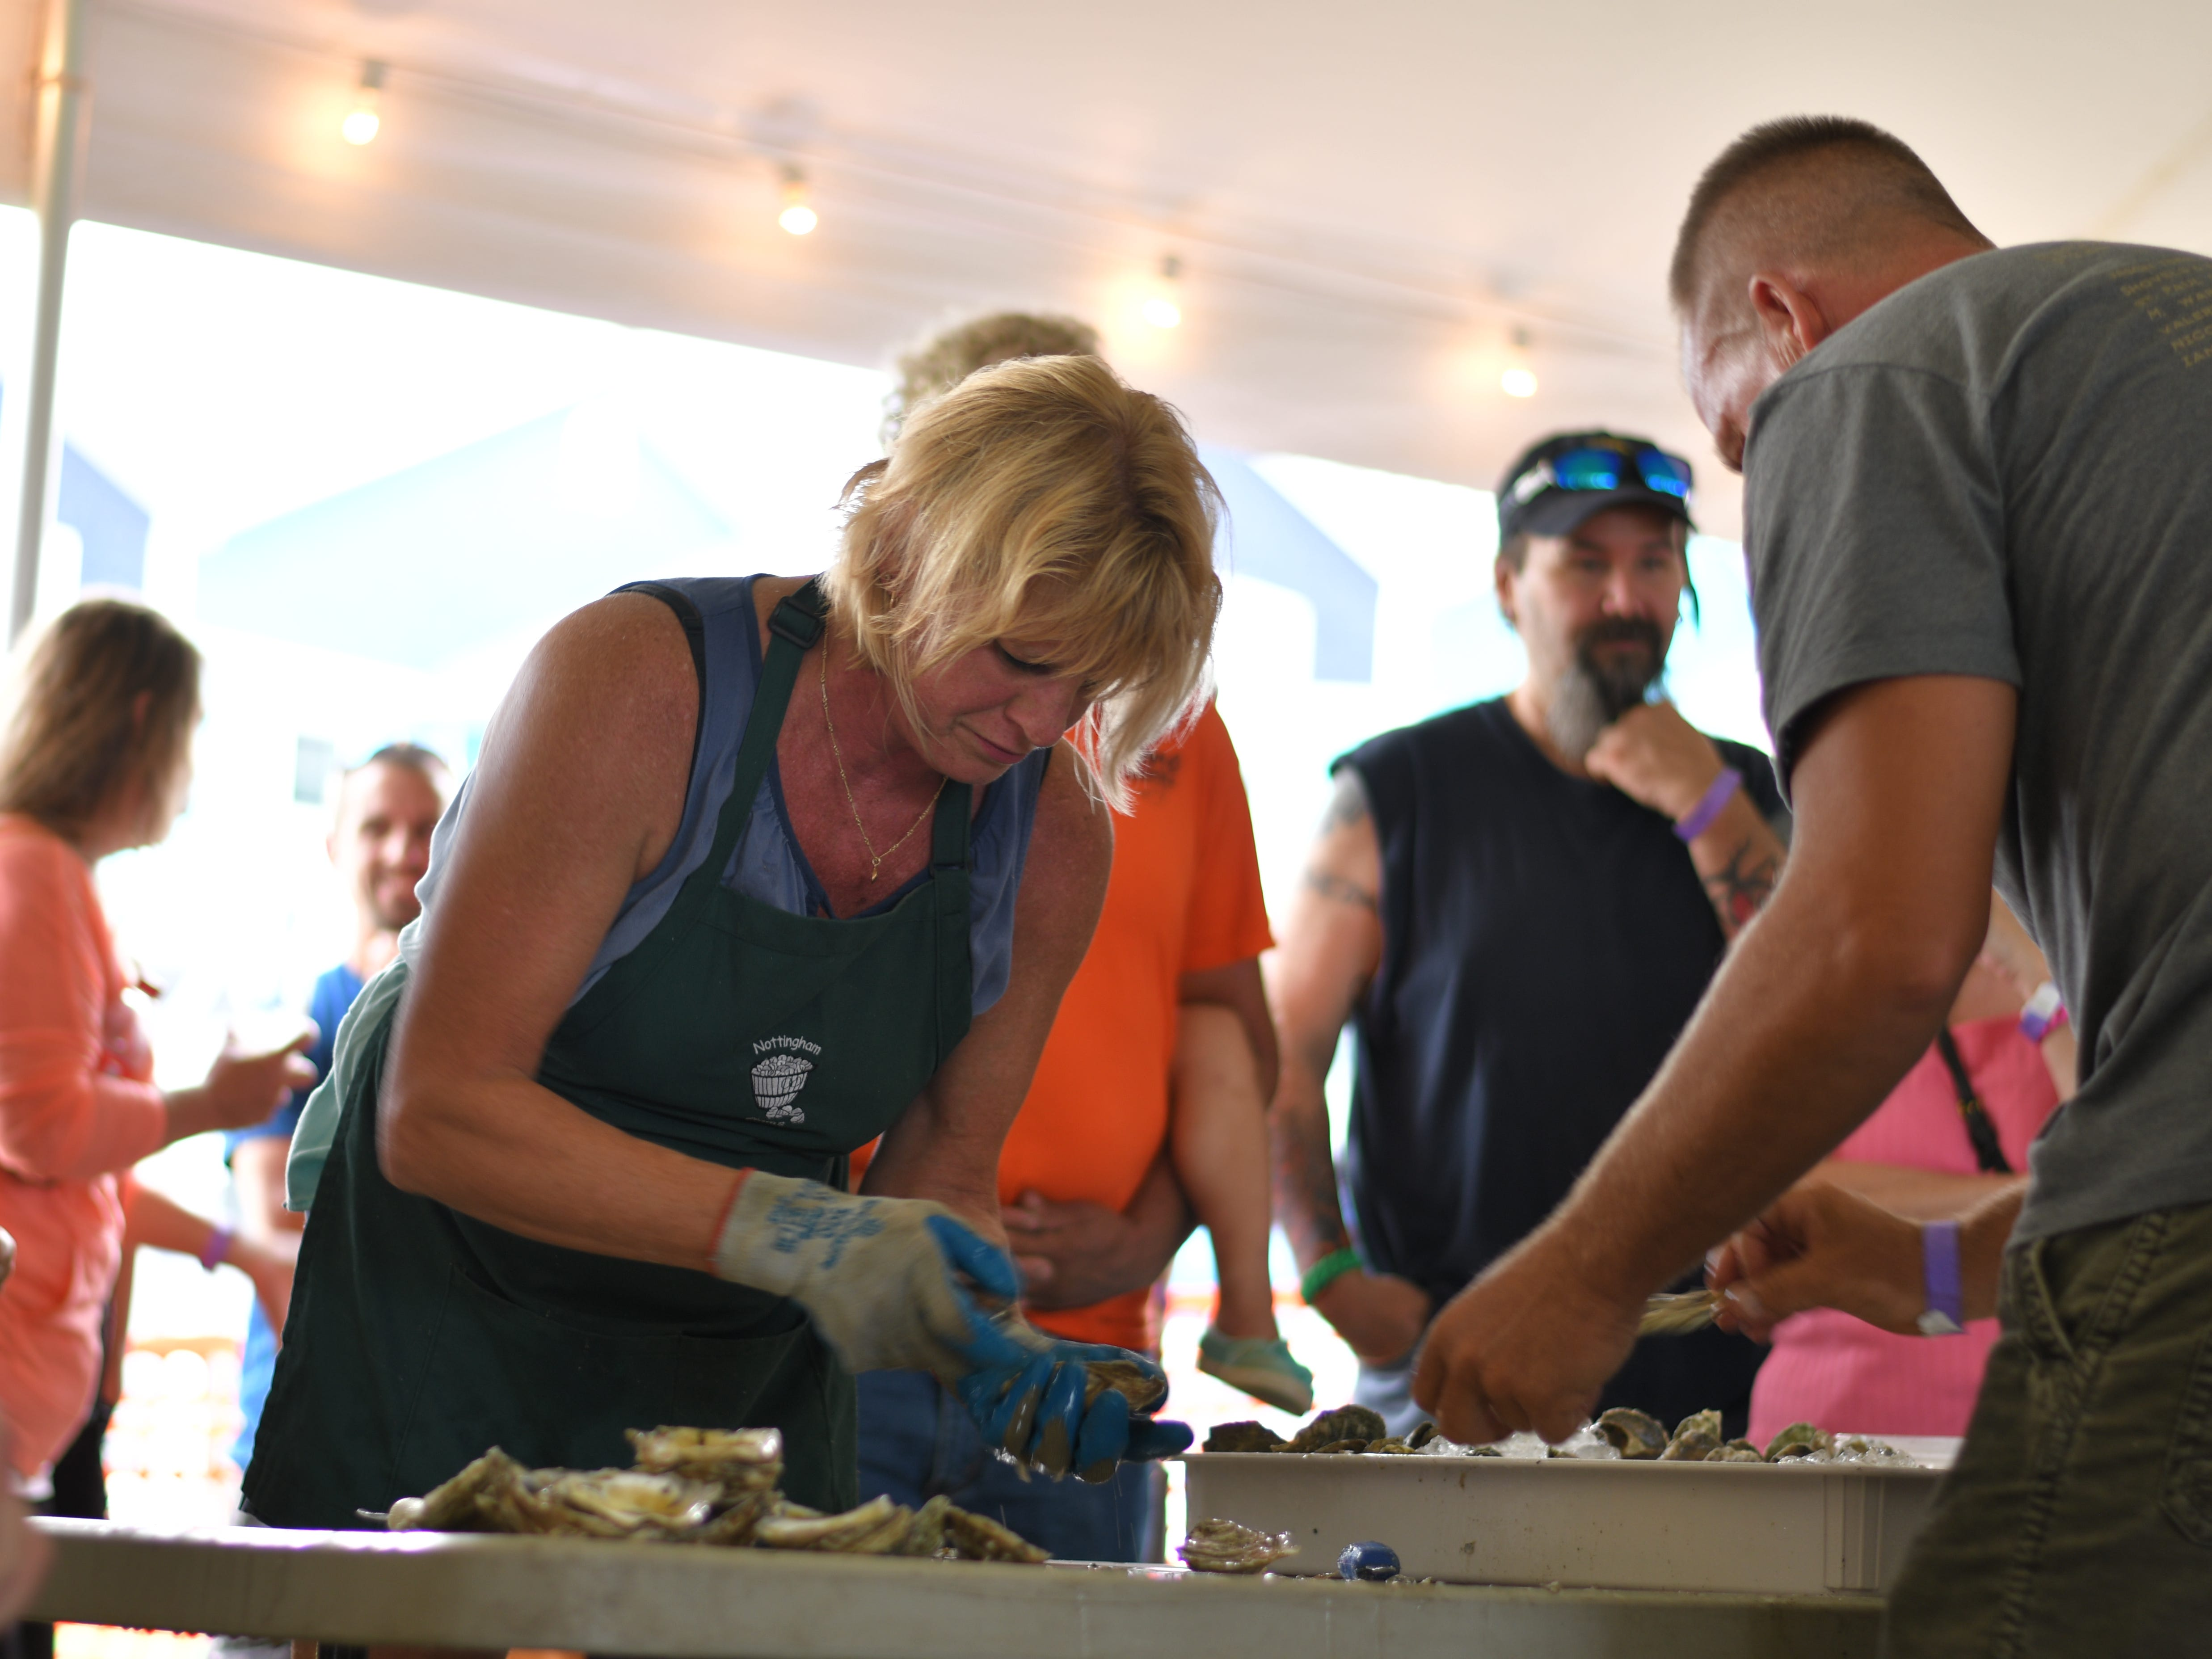 Amy Nottingham shucks oysters for her partner, Scott Simms, at the 3rd Annual Oyster Eating Contest.